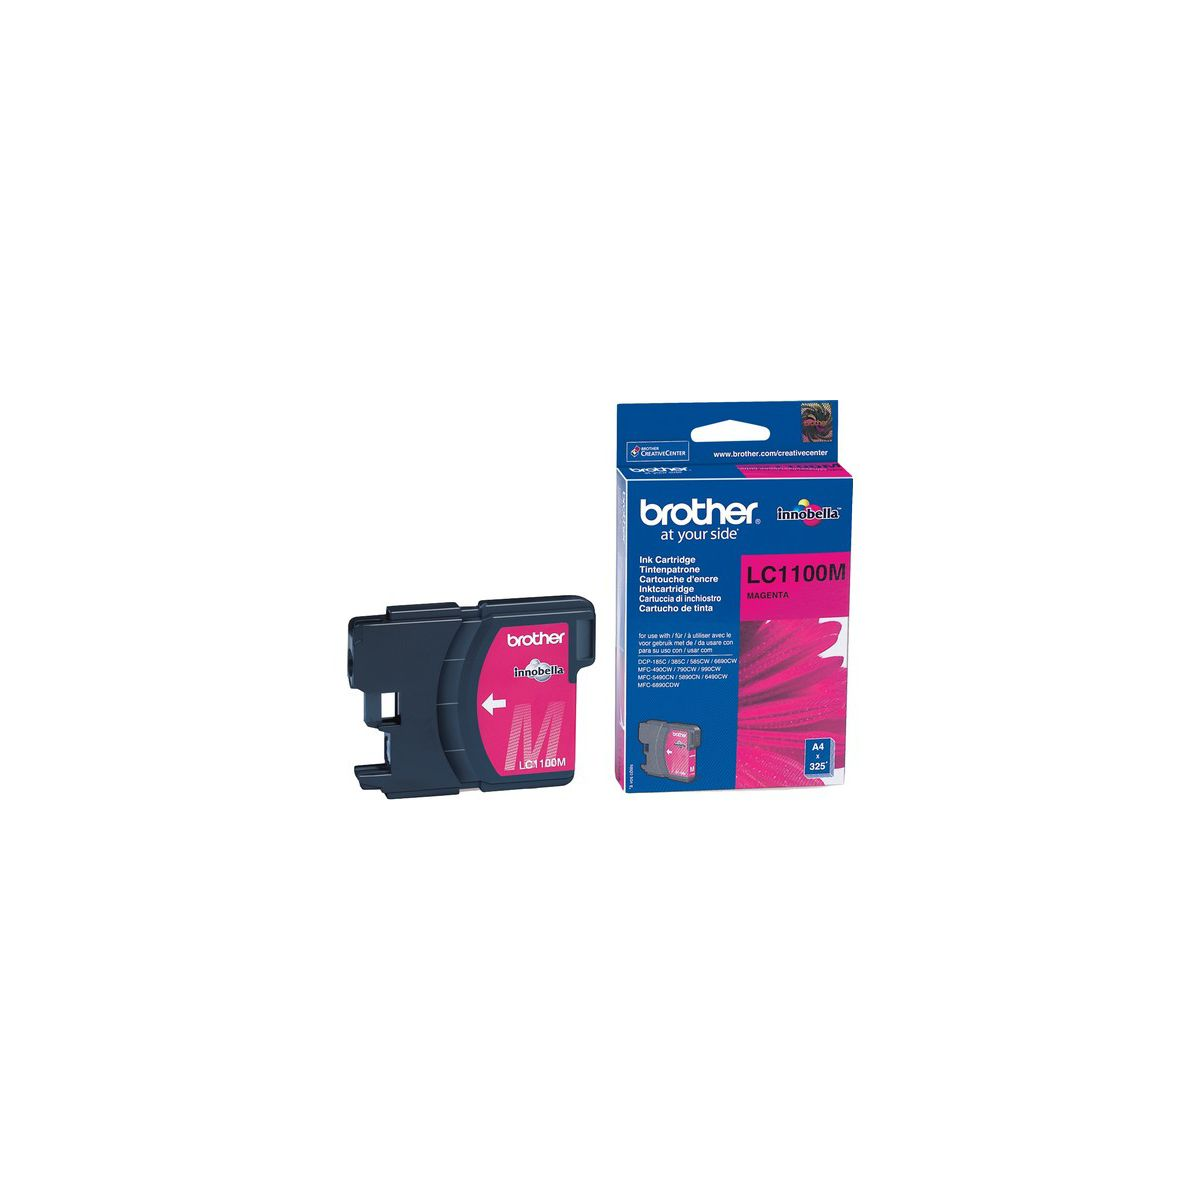 Cartouche d'encre BROTHER LC1100 magenta